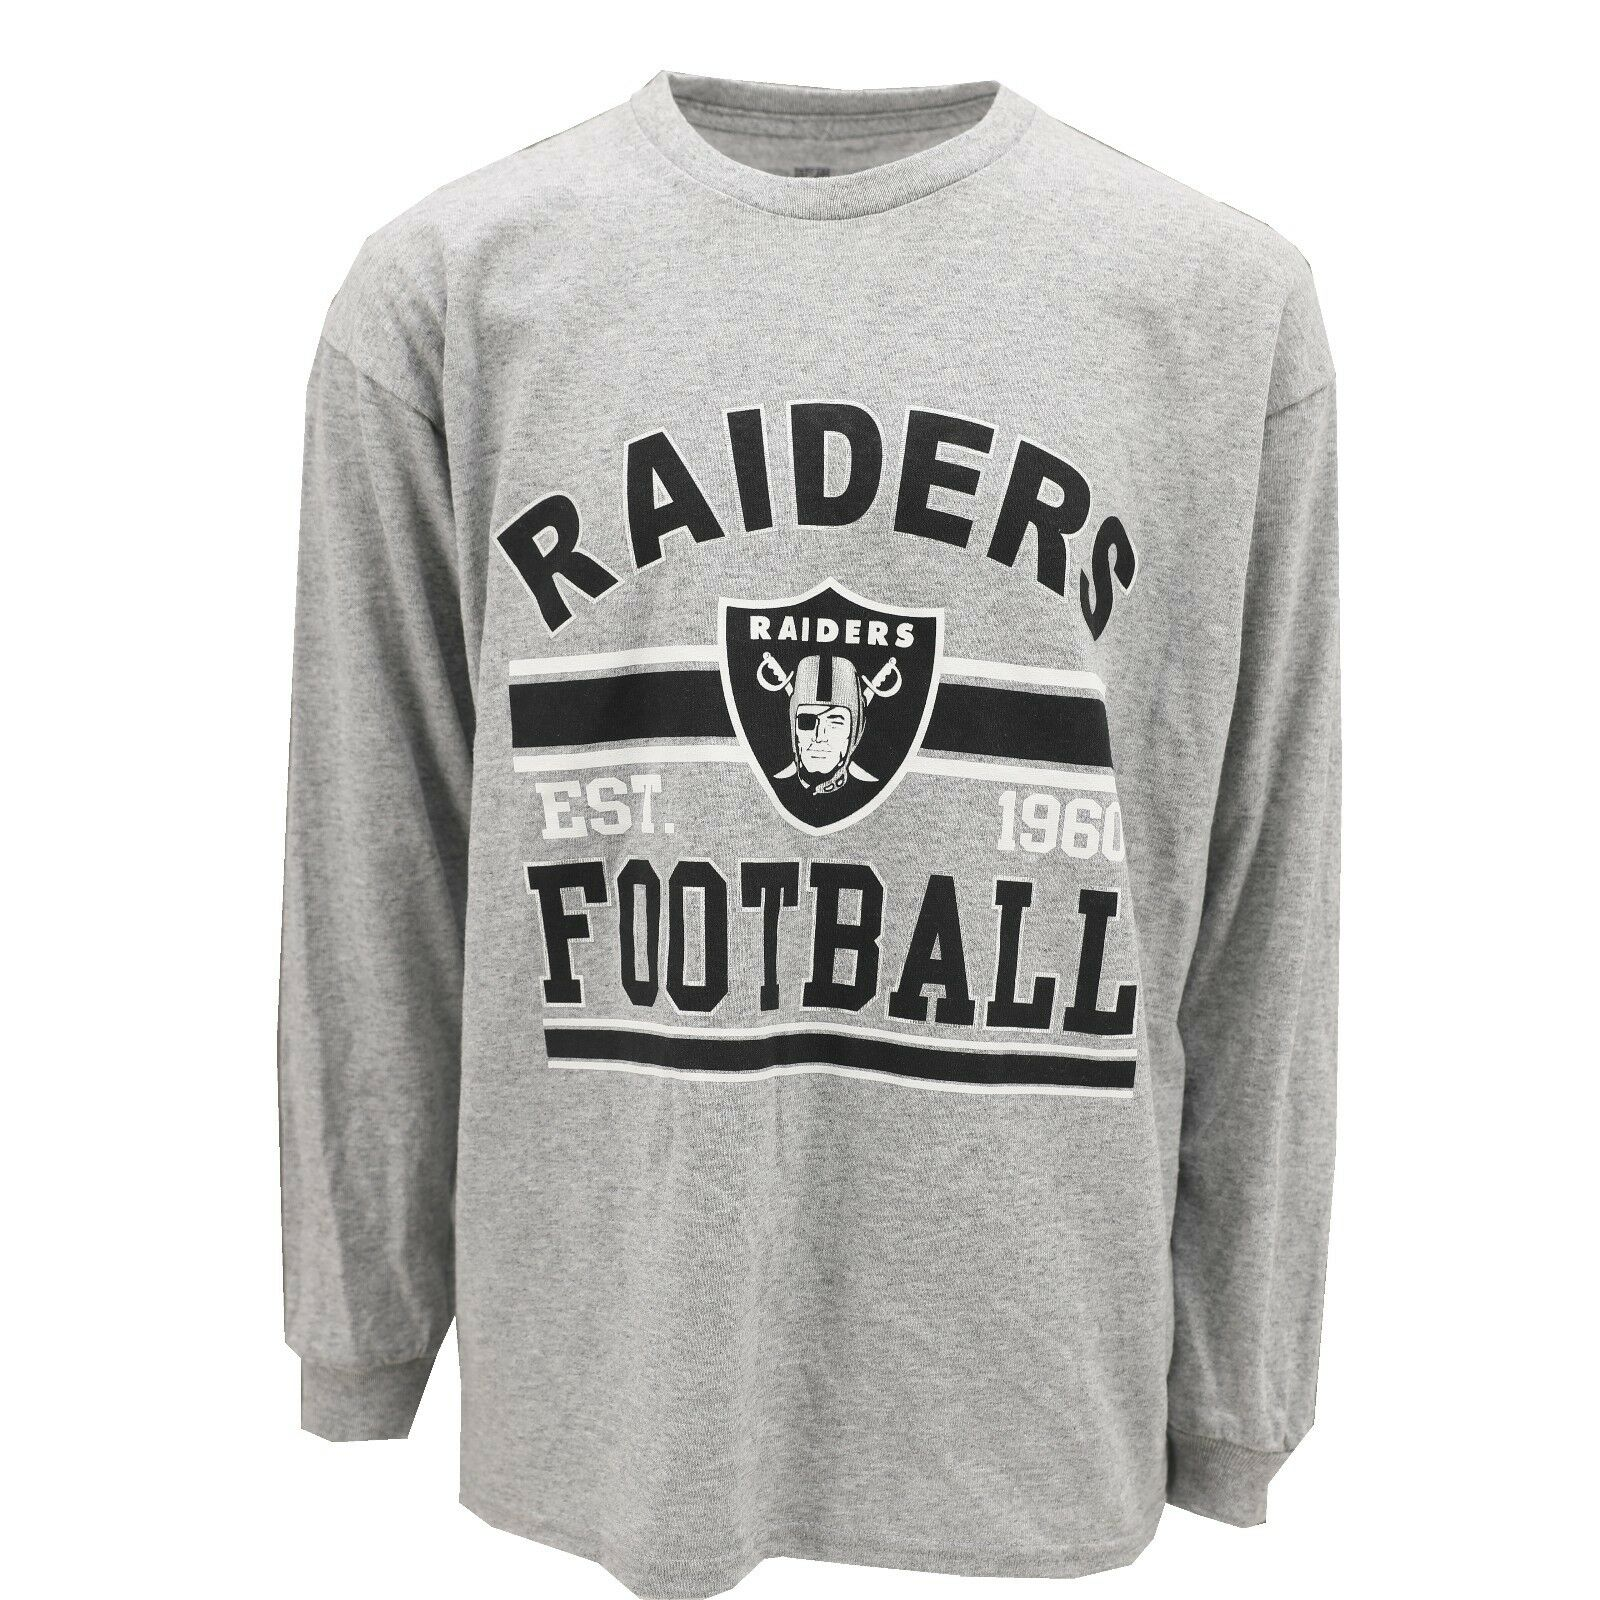 Details about NFL Oakland Raiders Official Apparel Kids Youth Size Long  Sleeve Shirt New Tags 53a46058b